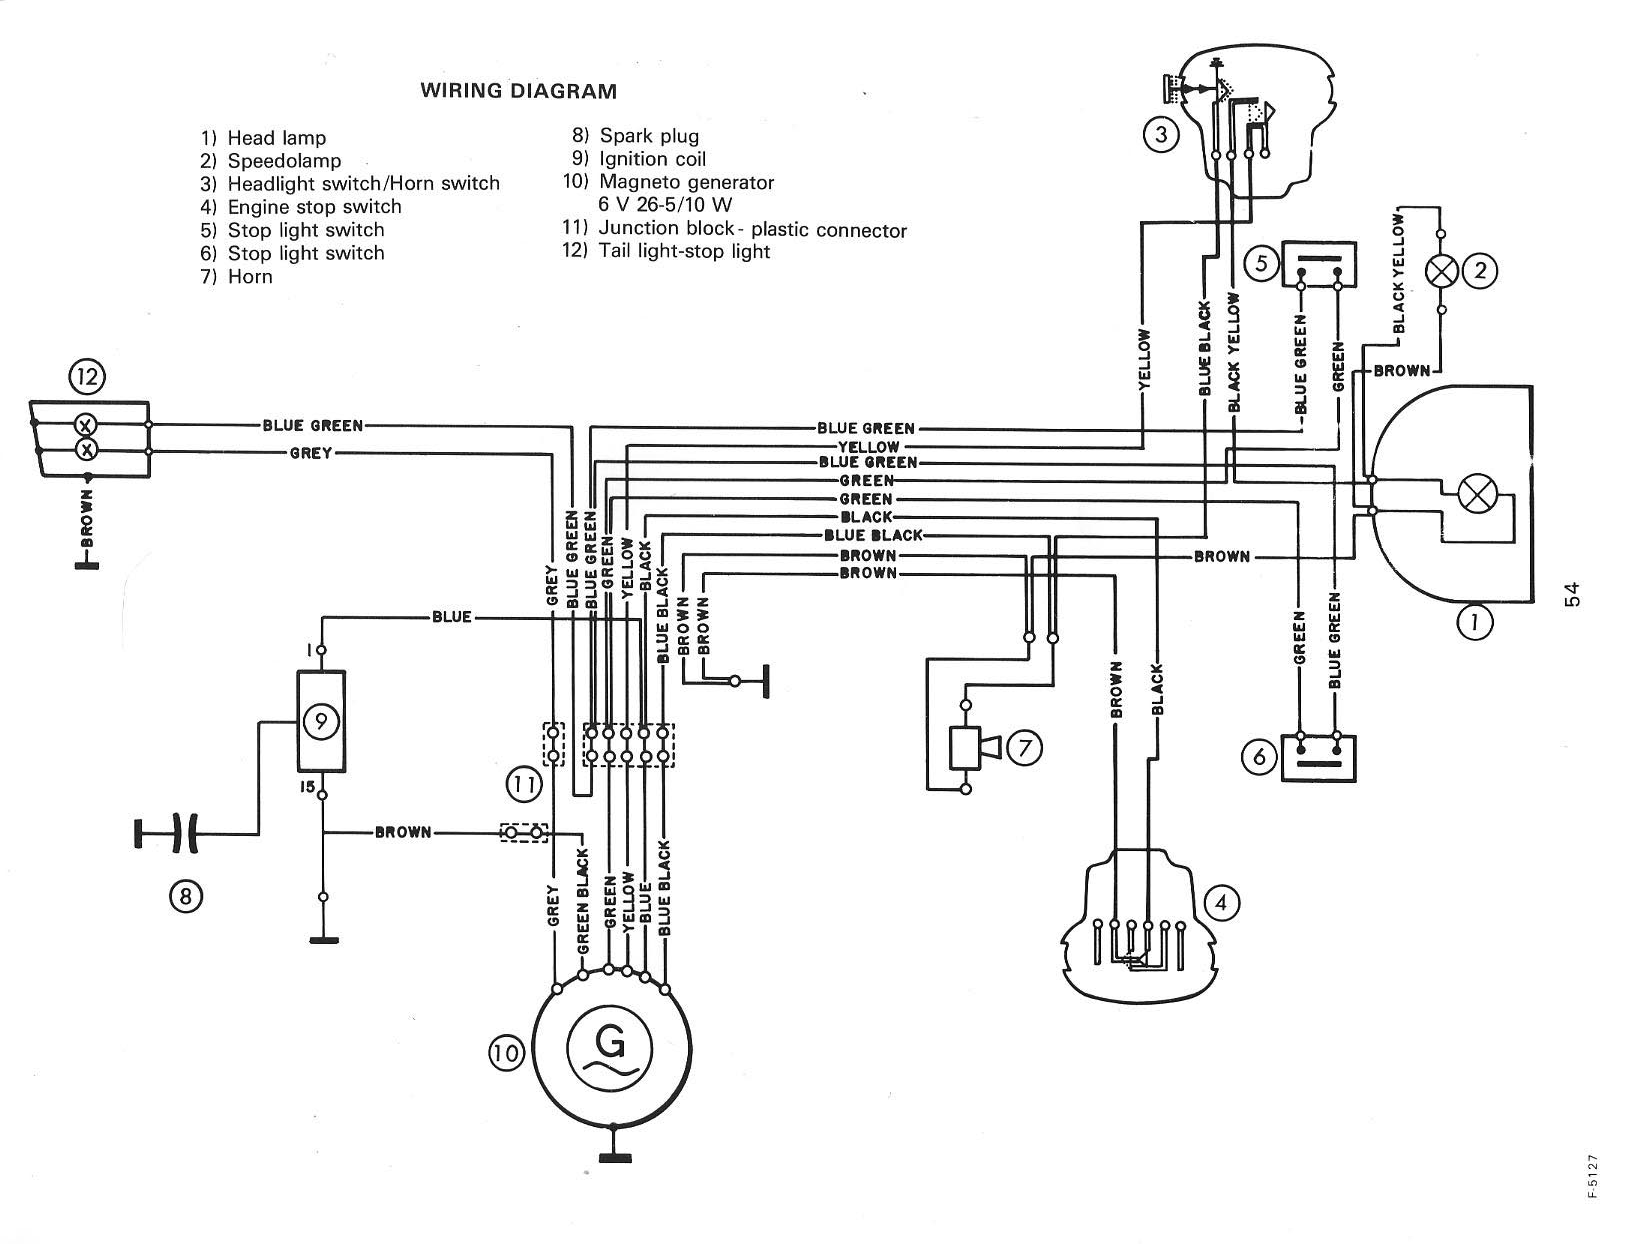 FASCO WIRING DIAGRAMS - Auto Electrical Wiring Diagram on